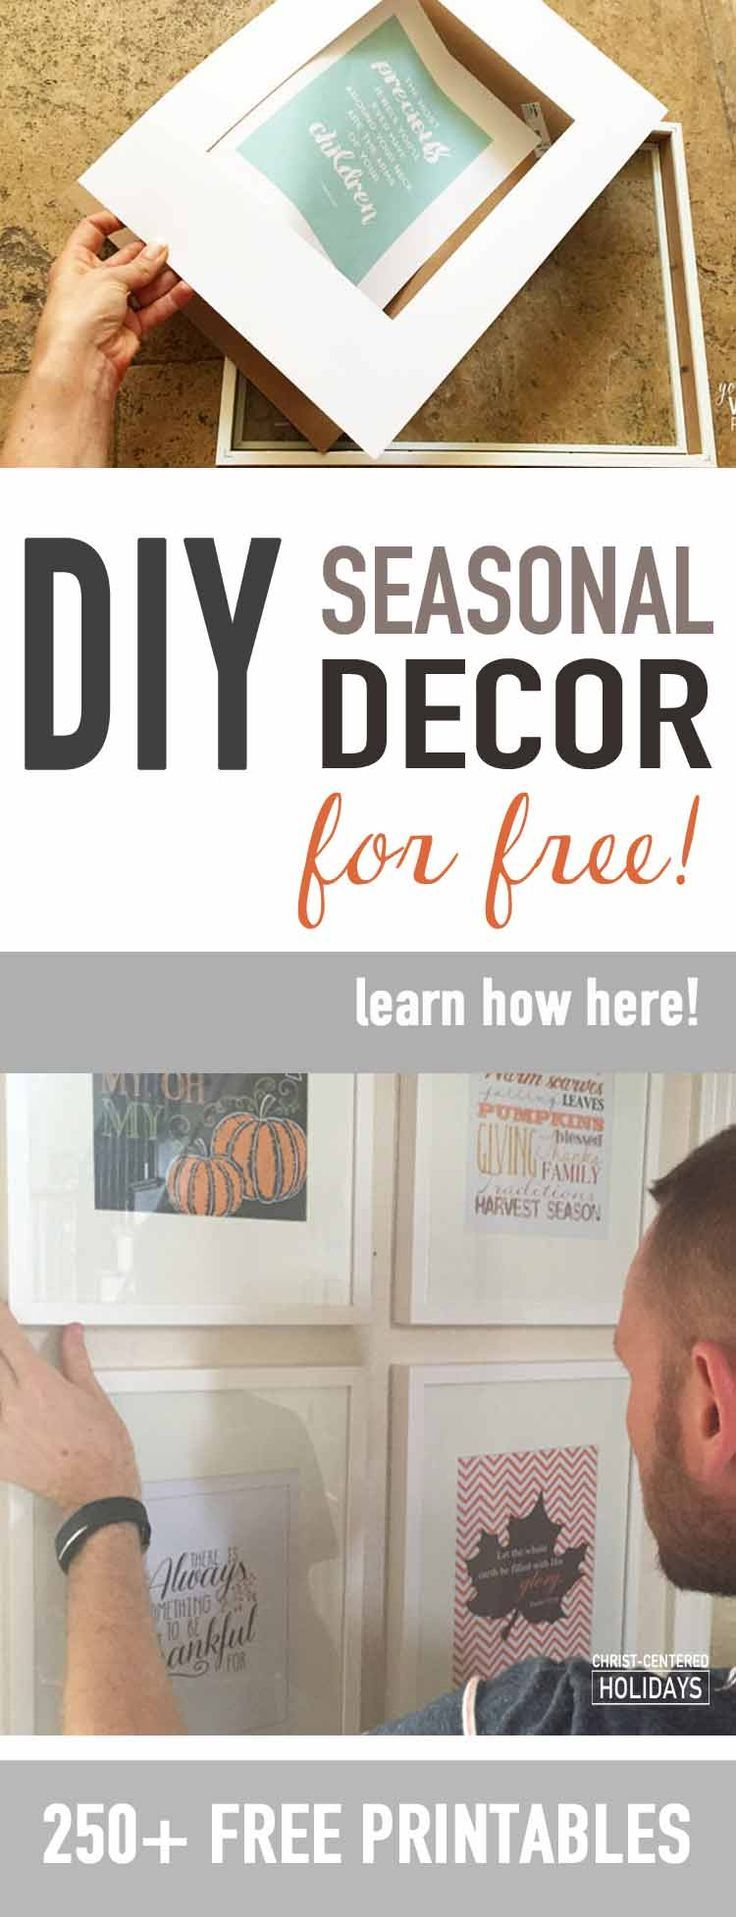 Want free seasonal home decor? You'll love this home decor idea to create a seasonal picture frame gallery out of free home decor printables! Get step by step instructions on how to create a picture frame collage wall for your home, plus links to 250 free 8 x 10 seasonal art printables!